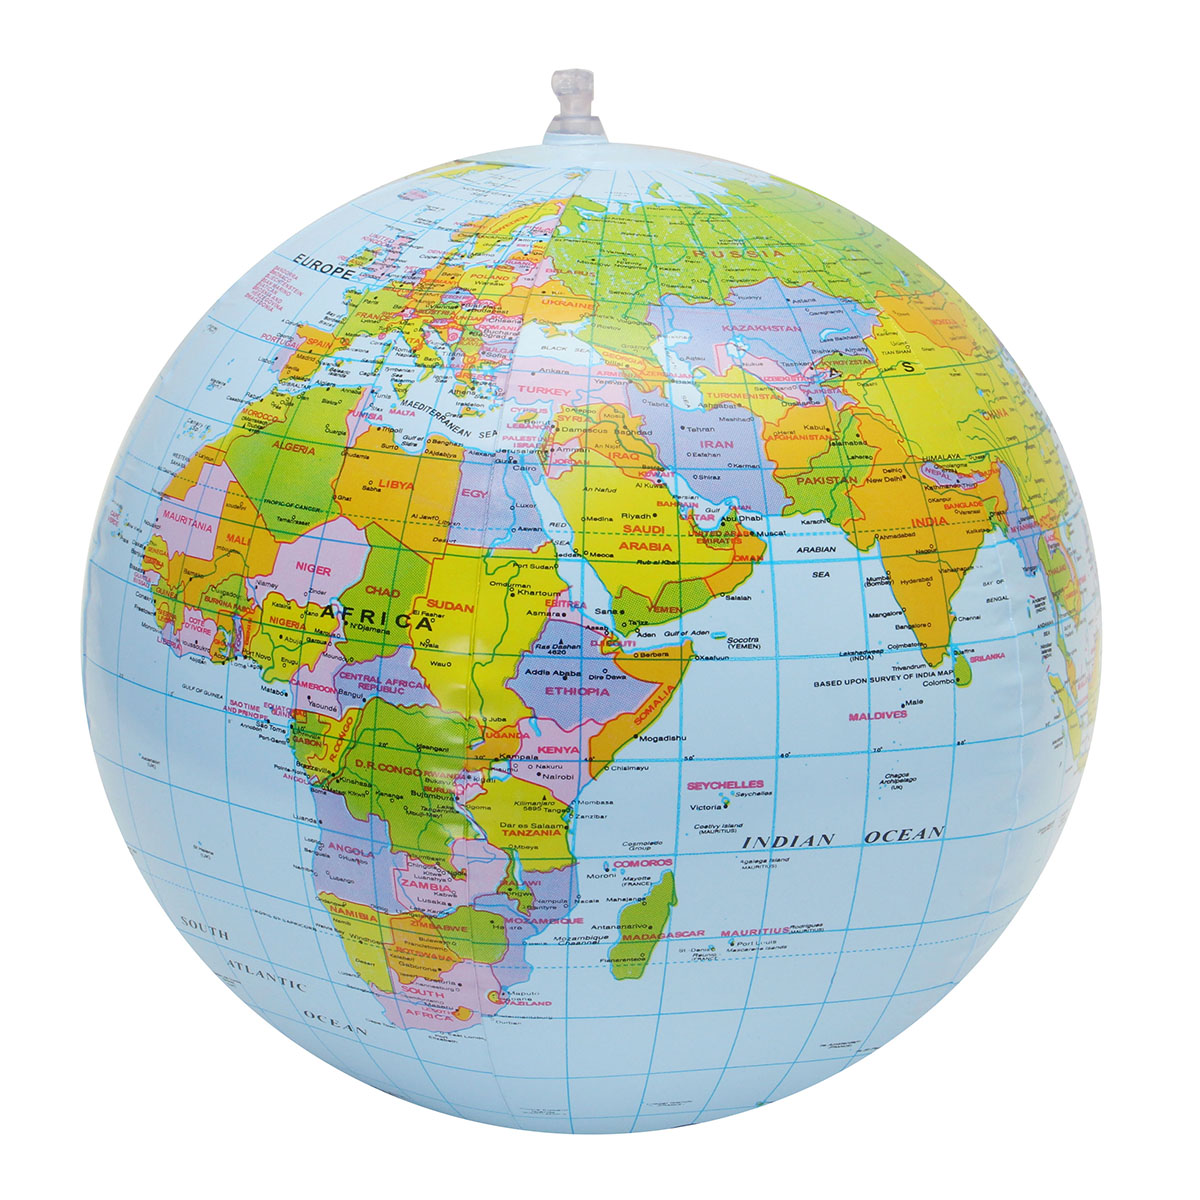 30cm Inflatable Globe World Earth Ocean Map Ball Geography Learning Educational Beach Ball Kids Toy Home Officedecoration